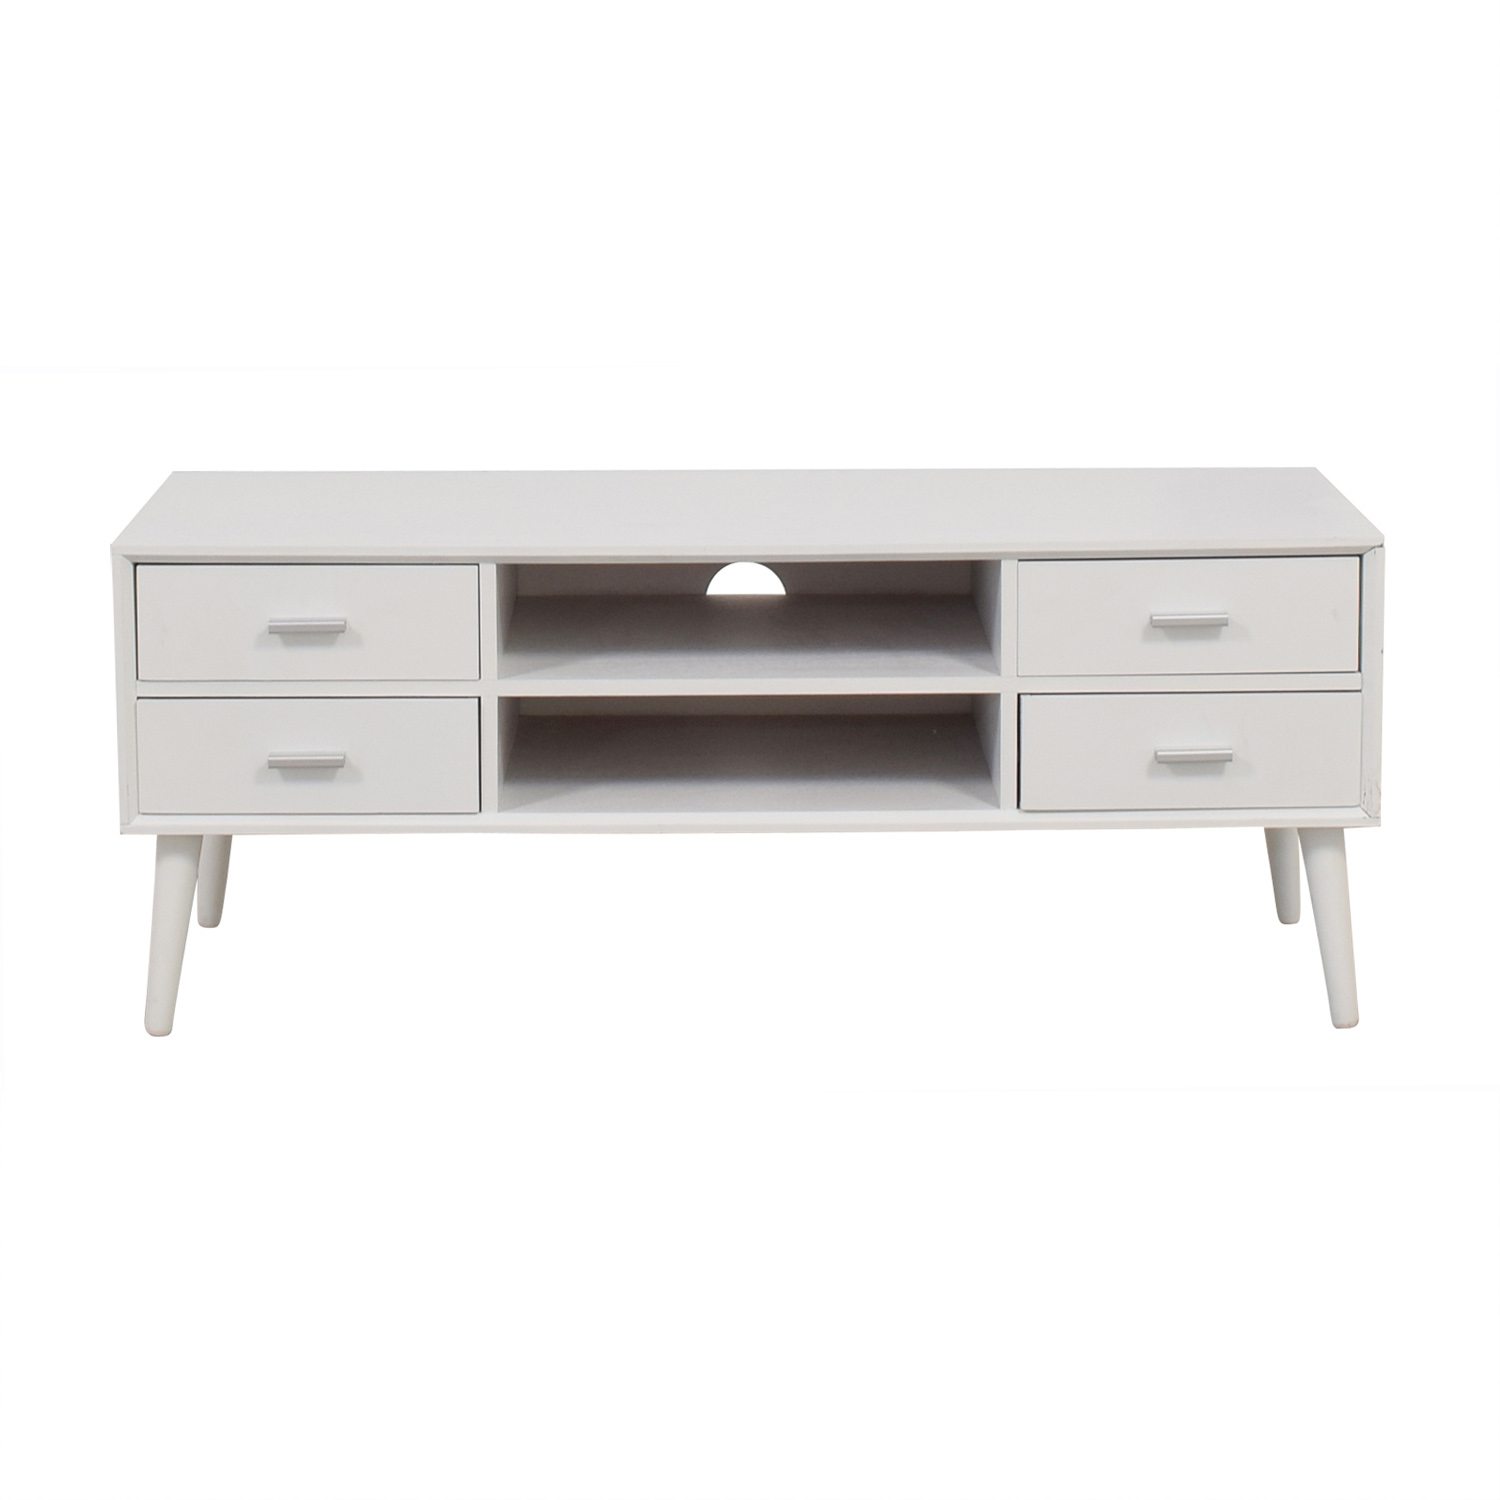 Corrigan Studio Corrigan Studio White Media Console nj